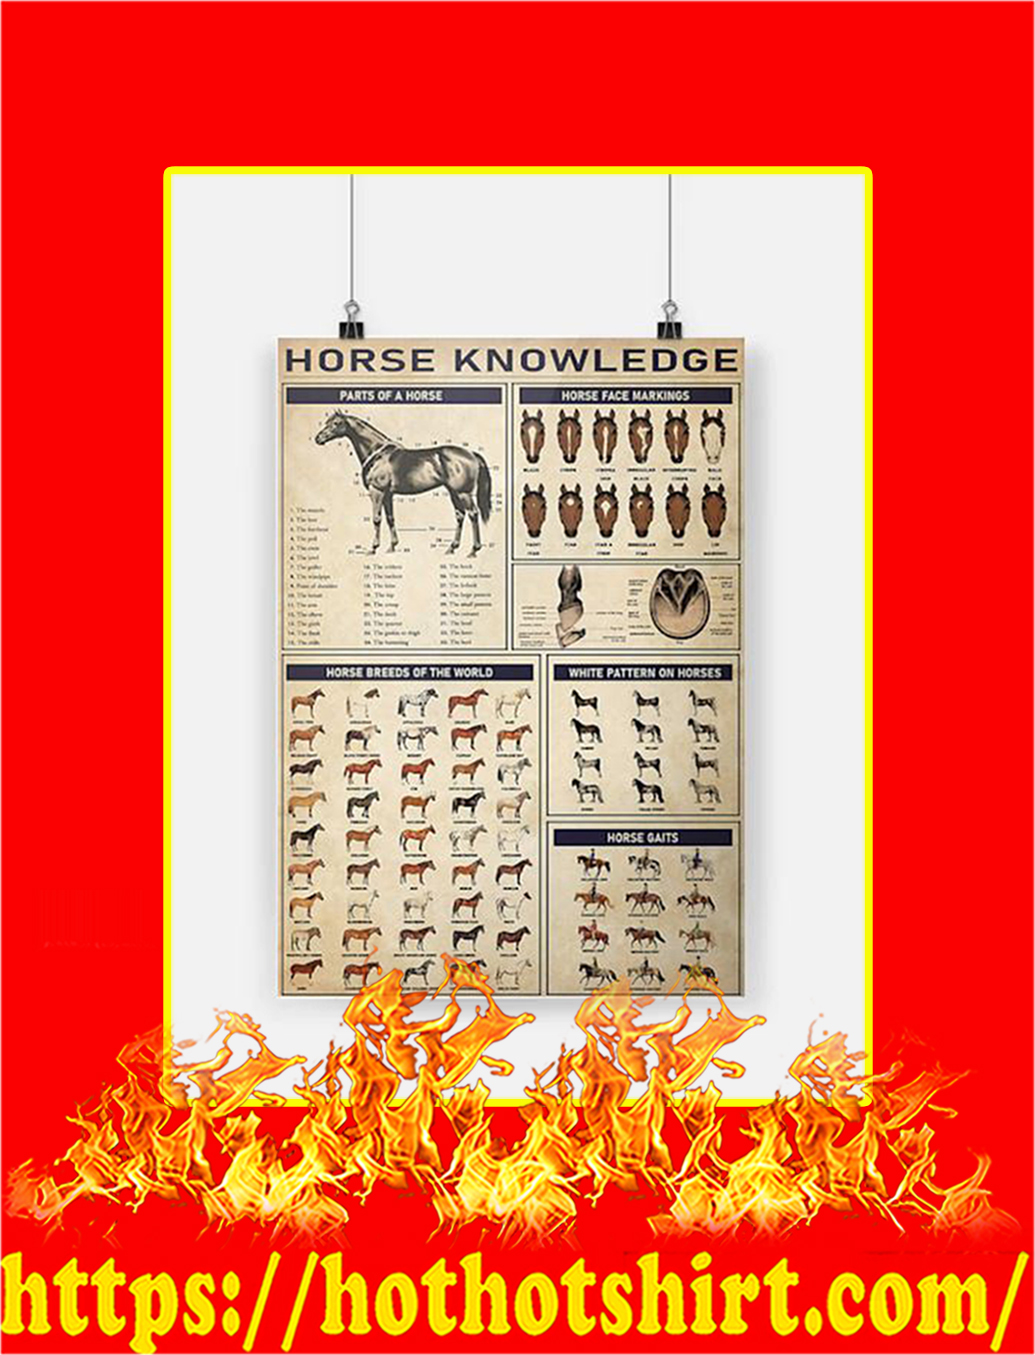 Horse knowledge Poster - A2